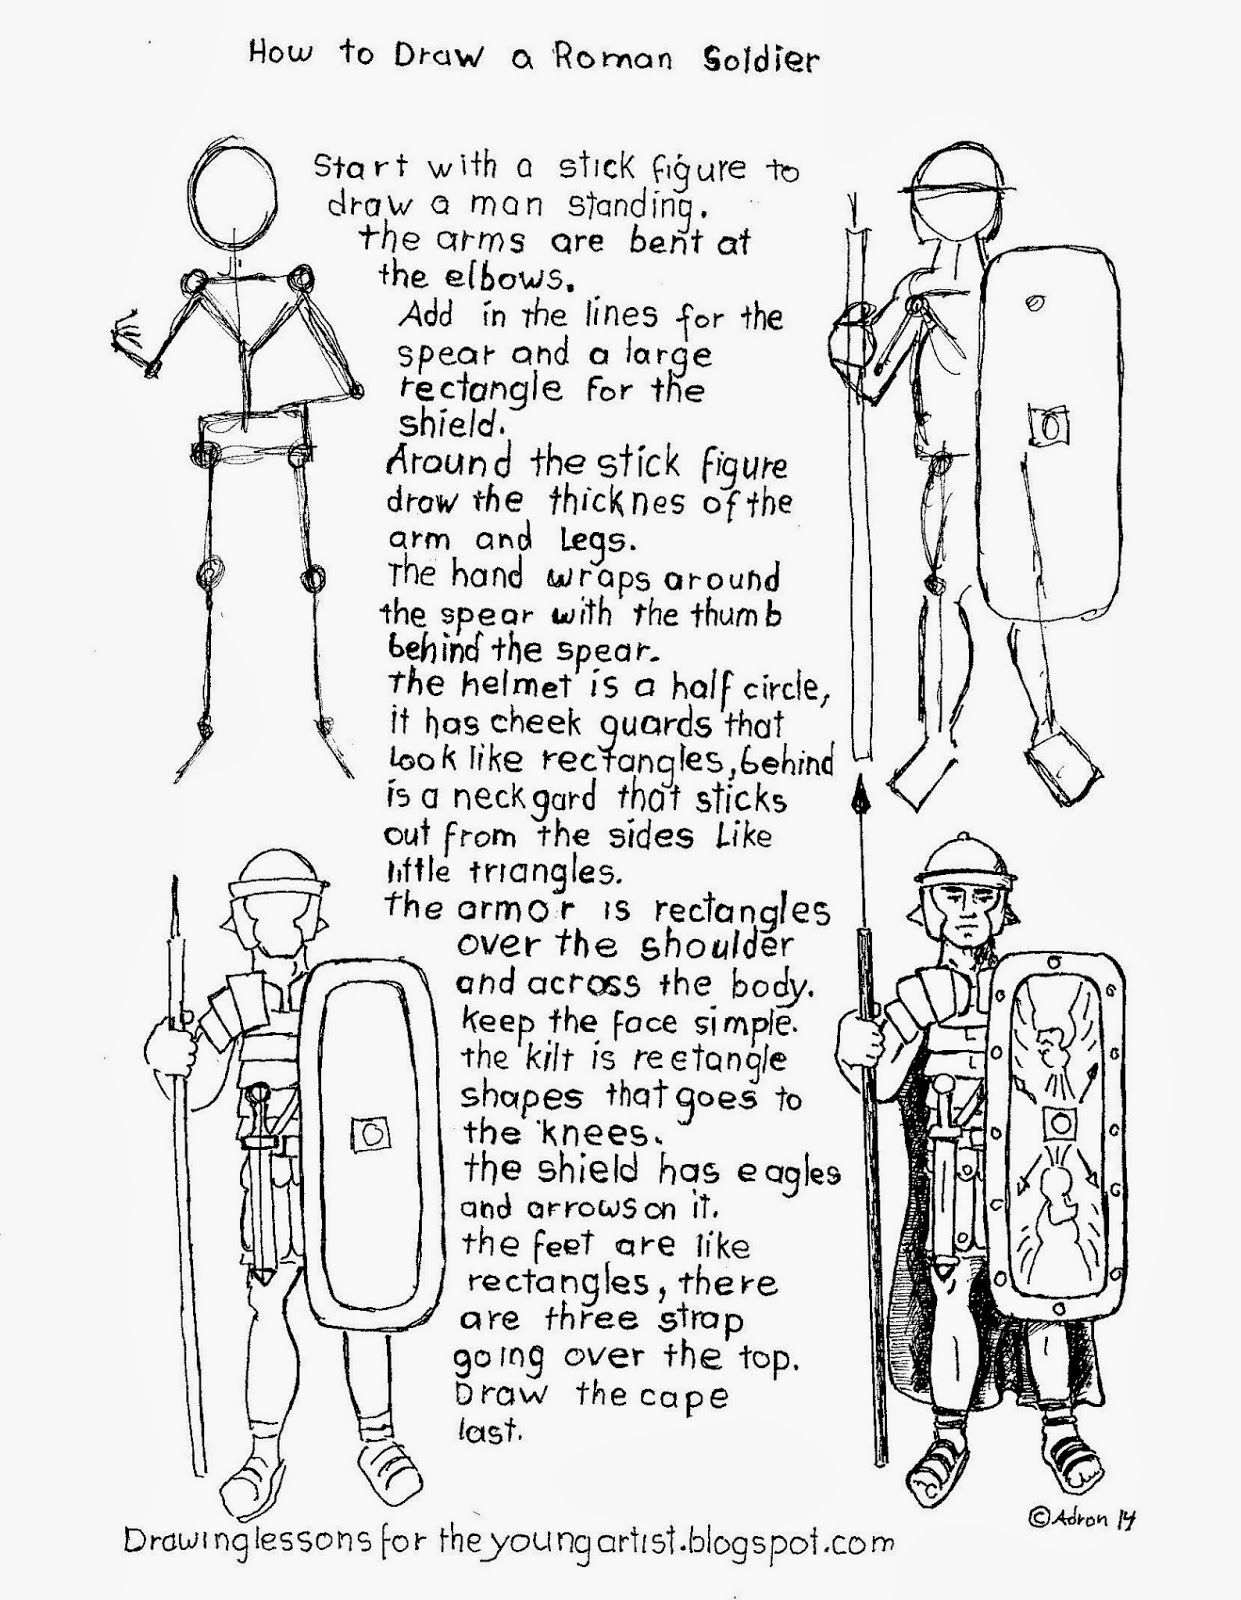 worksheet Ancient Rome Worksheets how to draw a roman legion soldier worksheet worksheets for young artist